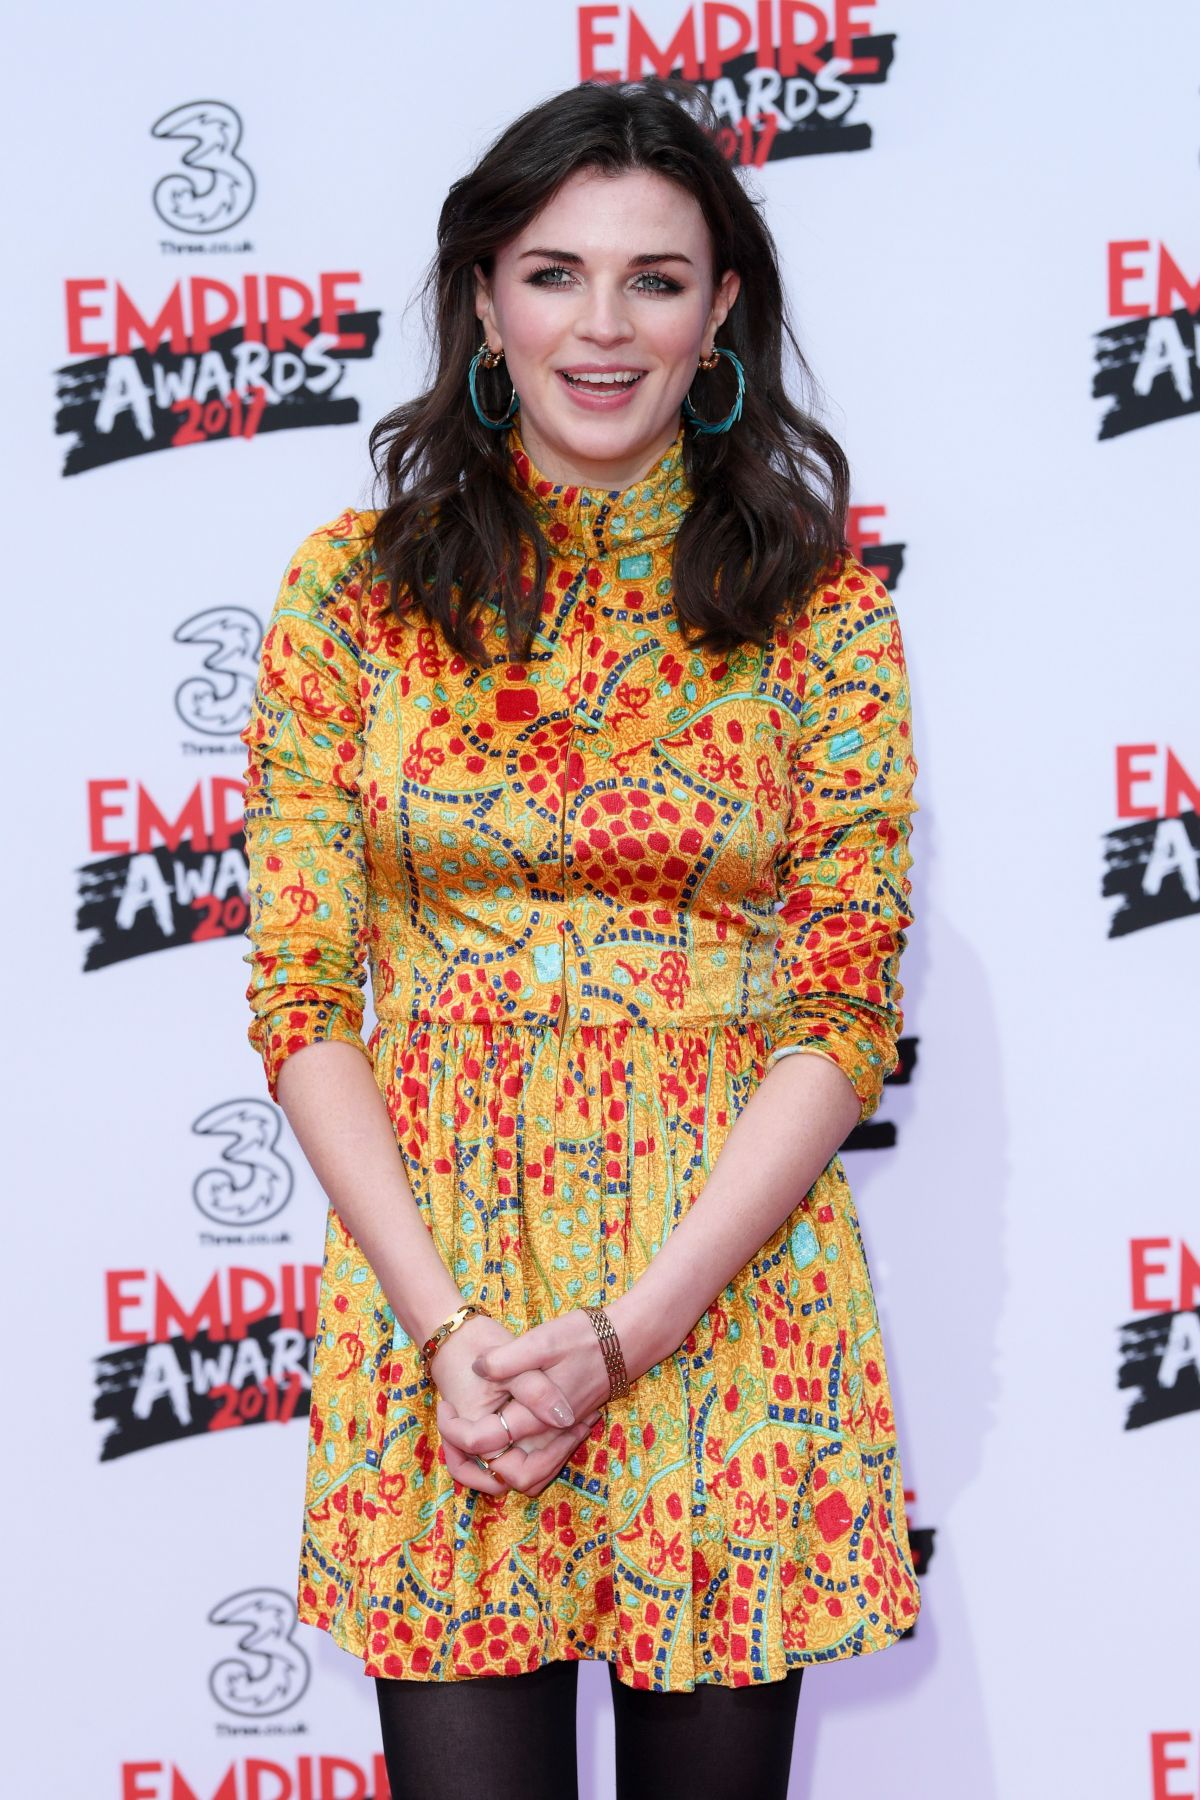 AISLING BEA at Three Empire Awards in London 03/19/2017